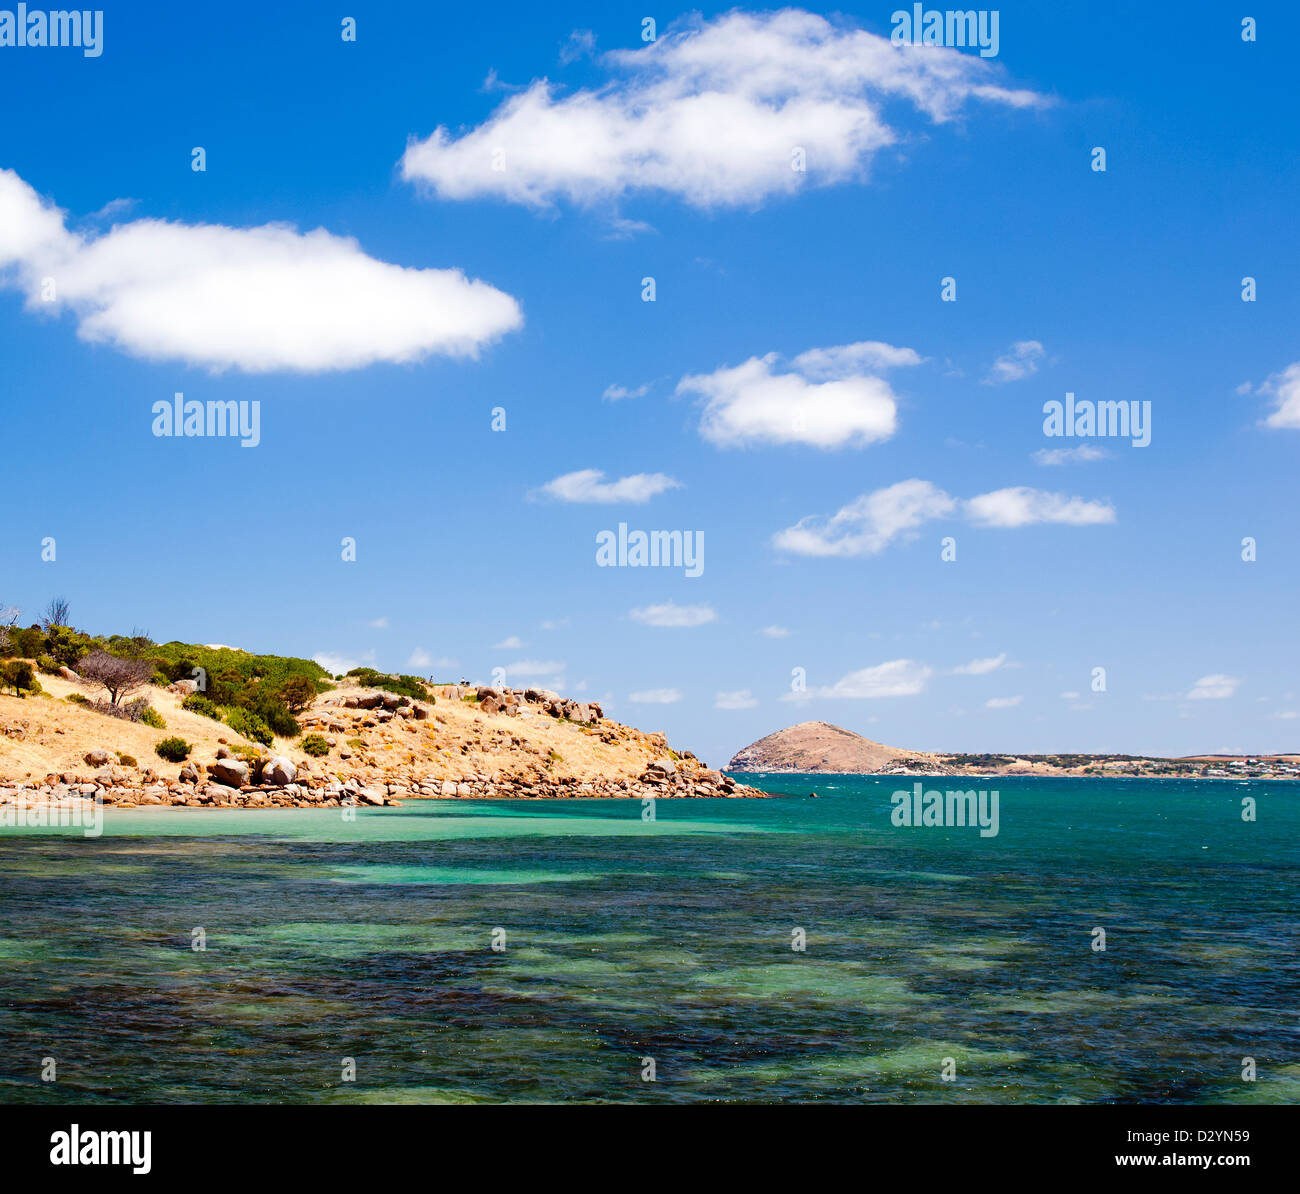 View across clear water to Granite Island, South Australia Stock Photo